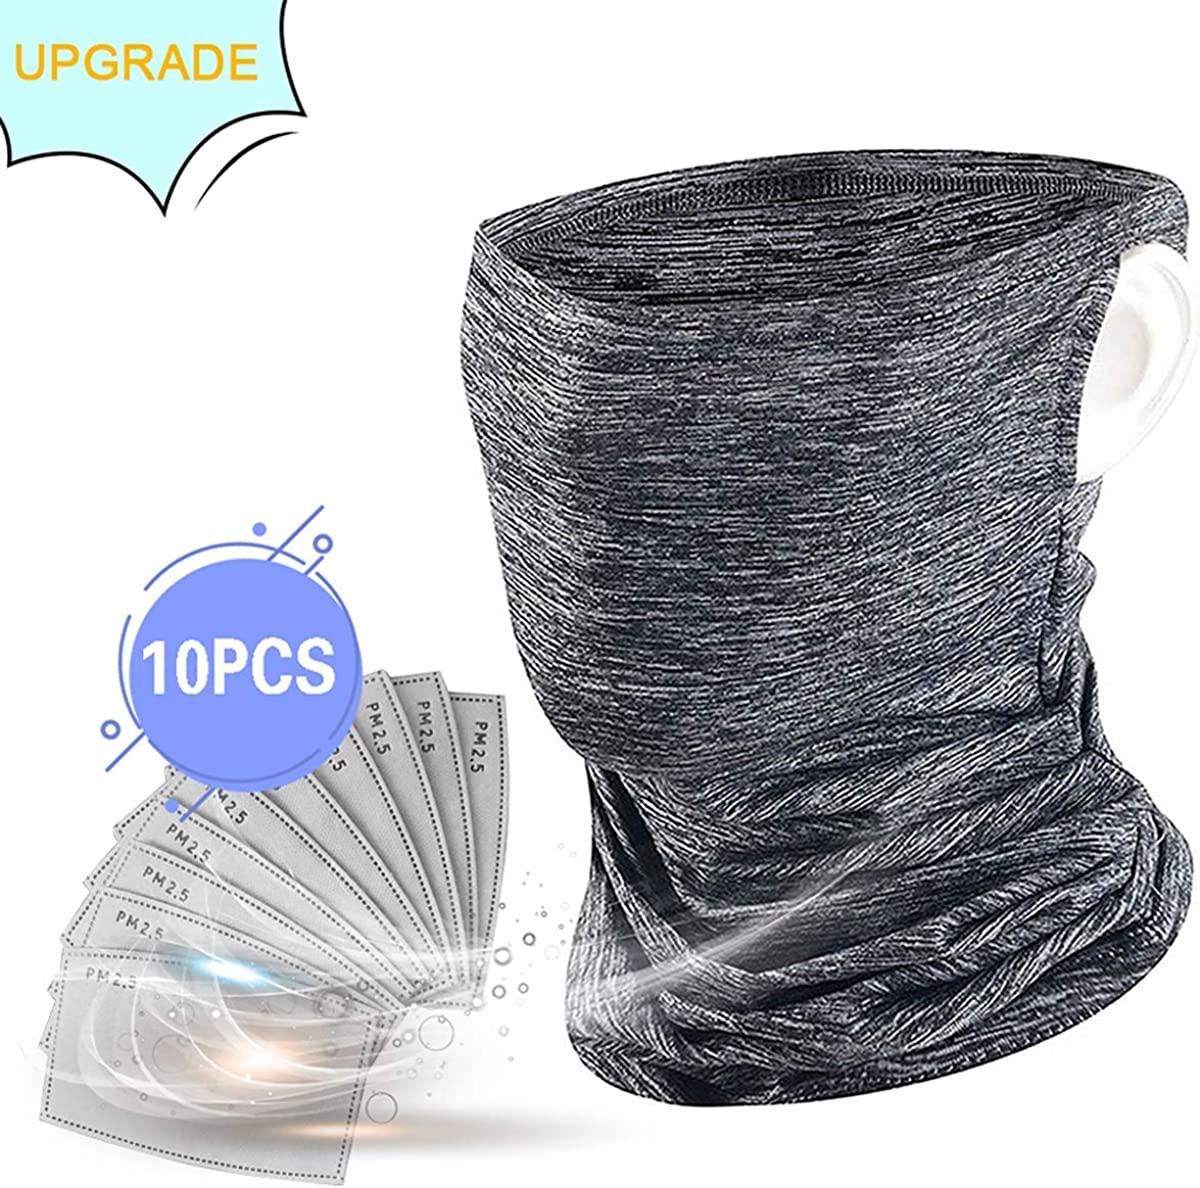 Neck Gaiter Bandanas with Ear Loops Design, Ice Silk Cooling Sports Scarf Balaclava for Dust Outdoor with 10pcs Filters